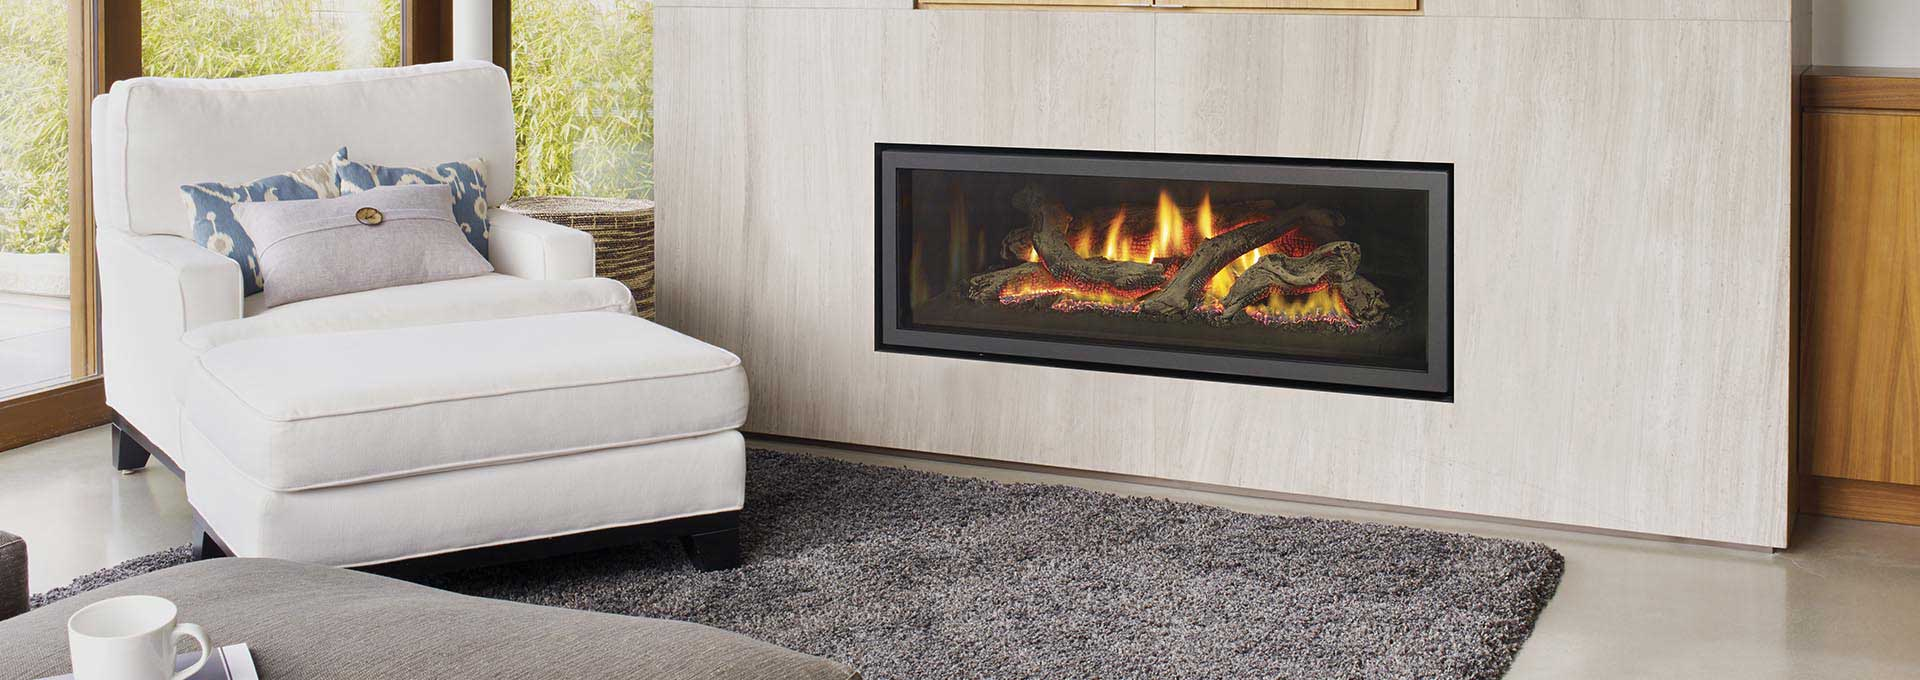 2020 Gas Fireplace Trends – Your Guide to Fireplace Design